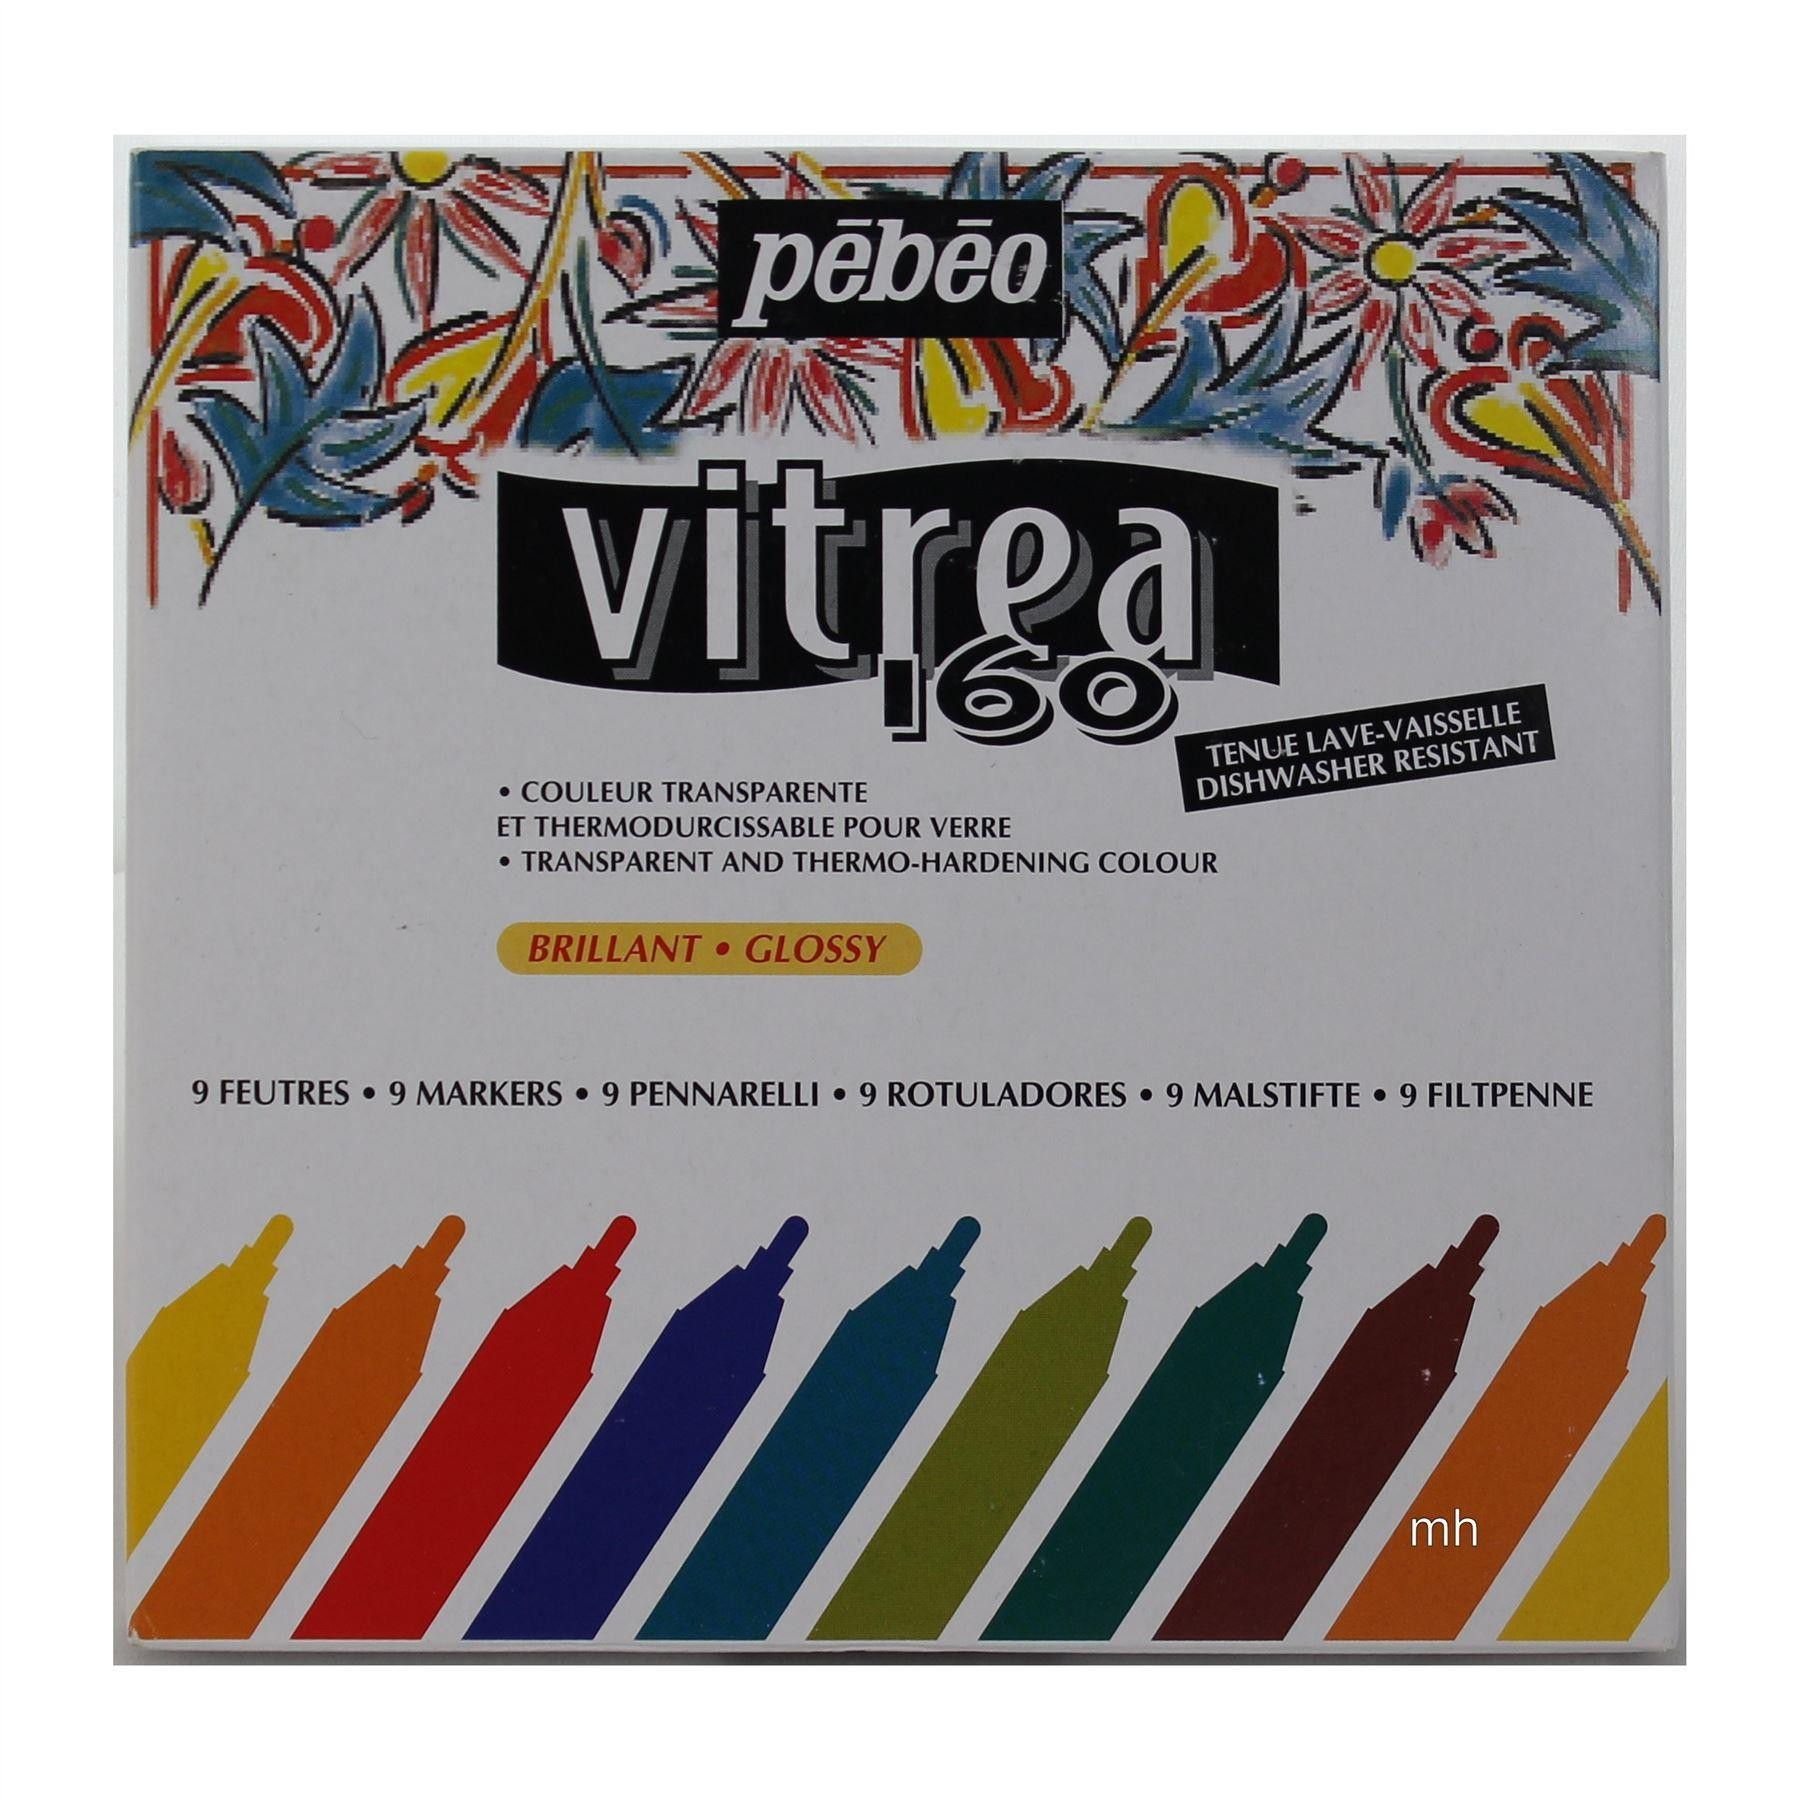 Pebeo Vitrea 160 markers pack